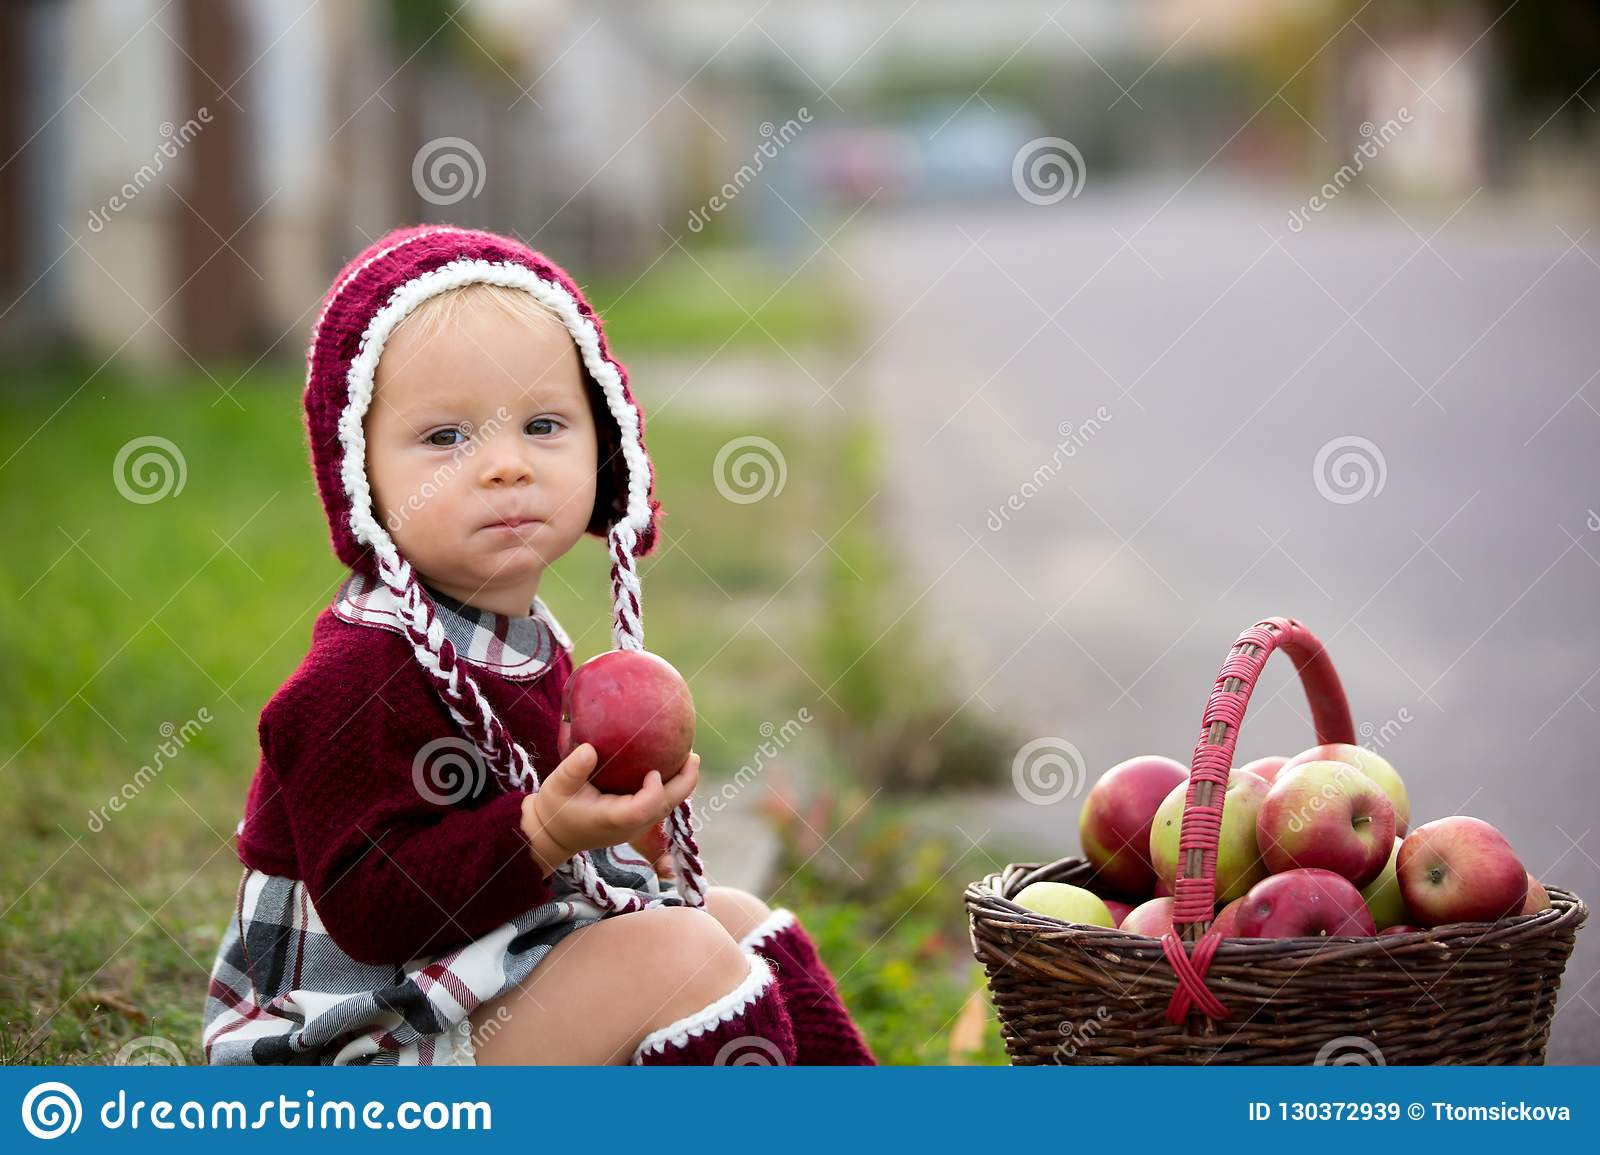 Child eating apples in a village in autumn. Little baby boy play